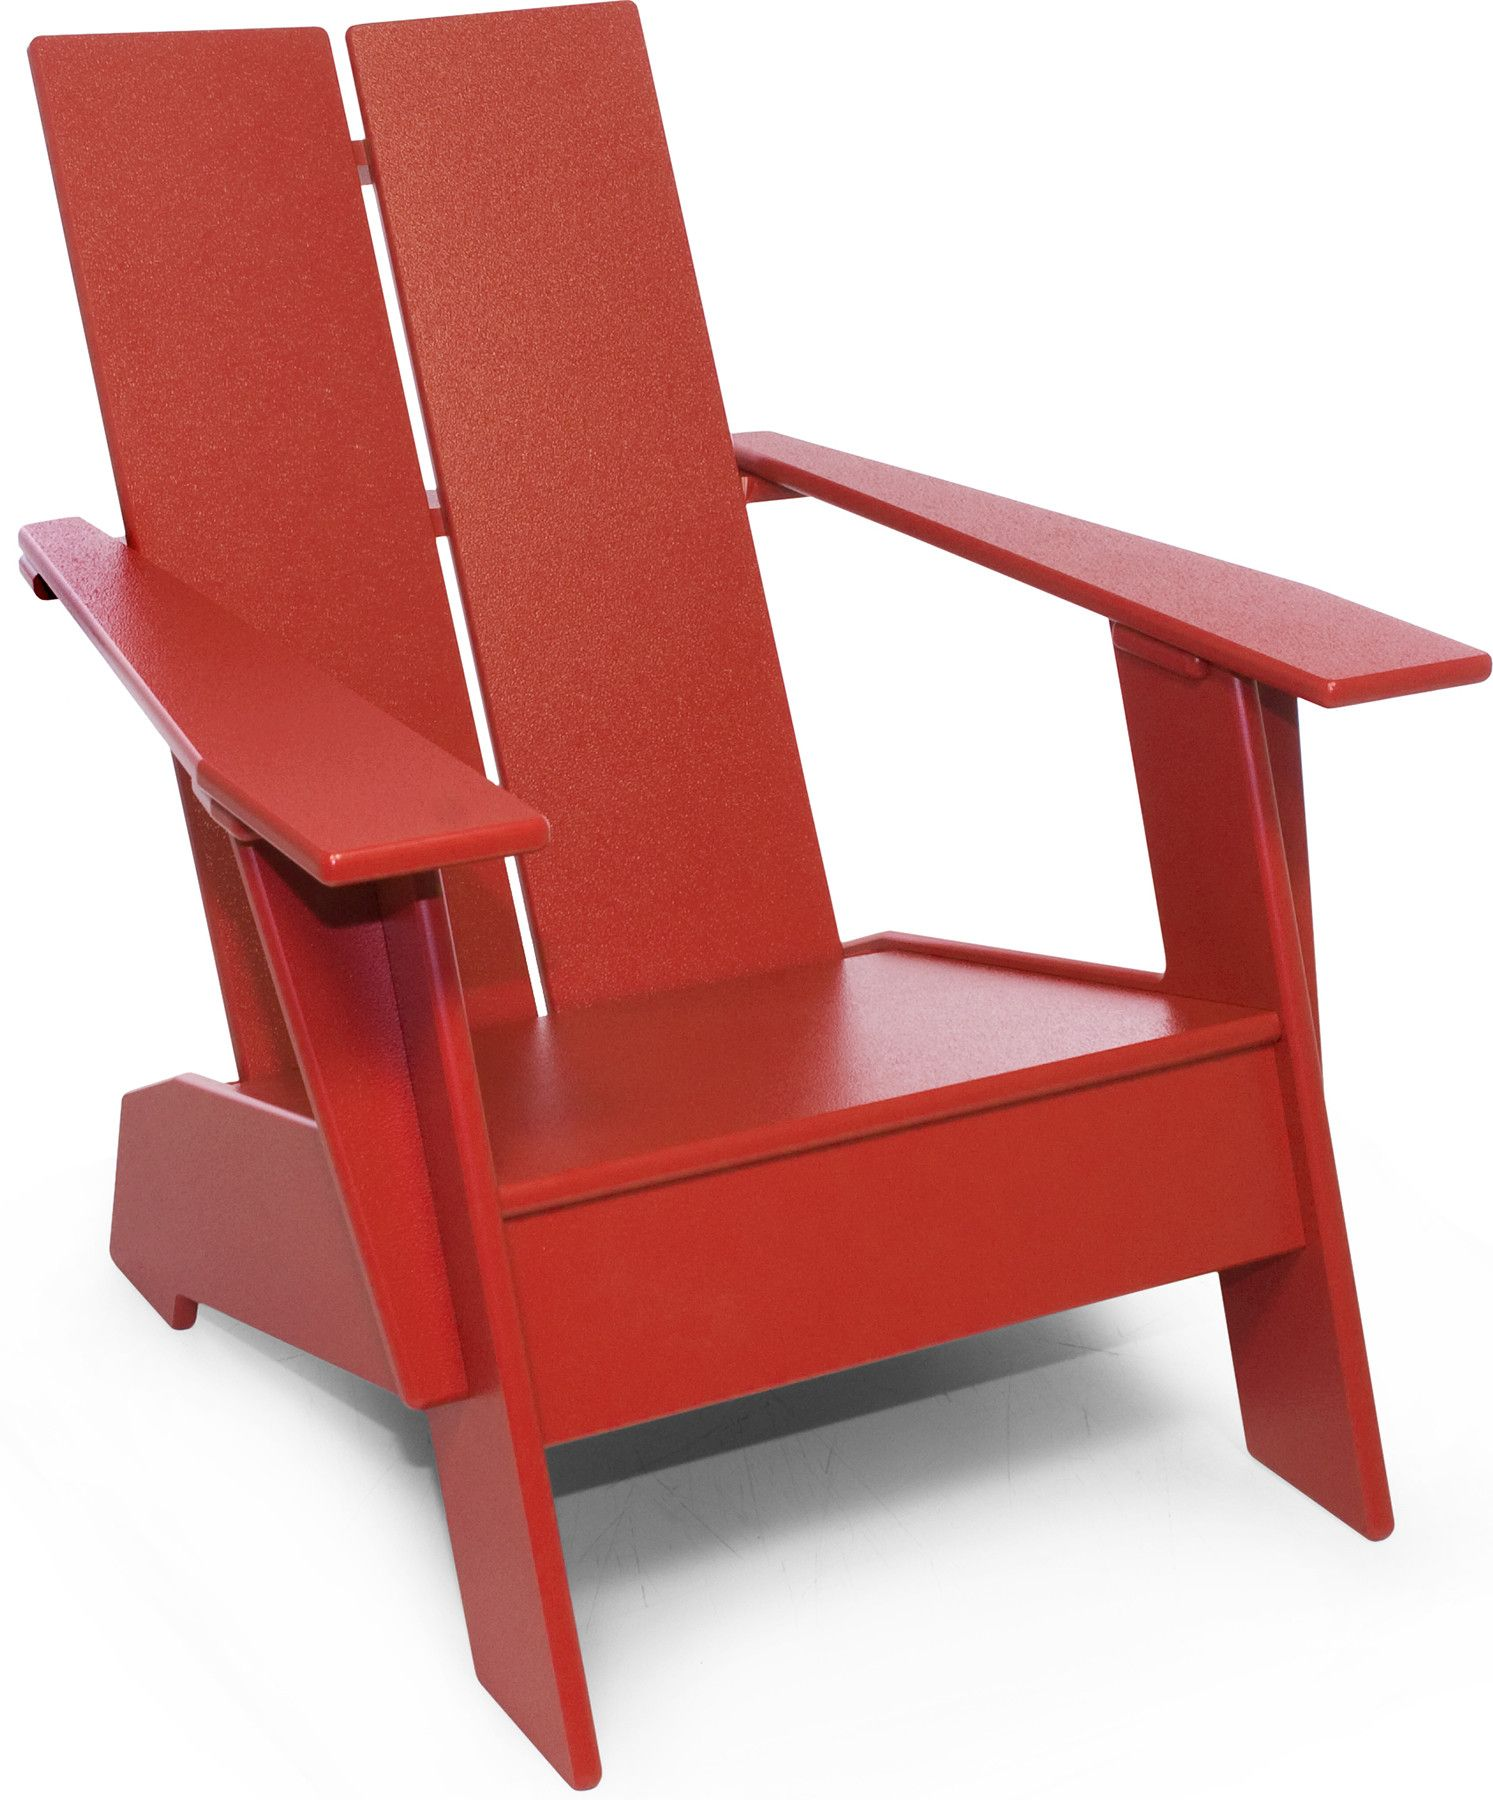 Kid Adirondack Chair Kids Adirondack Chair Furniture Kids Adirondack Chair